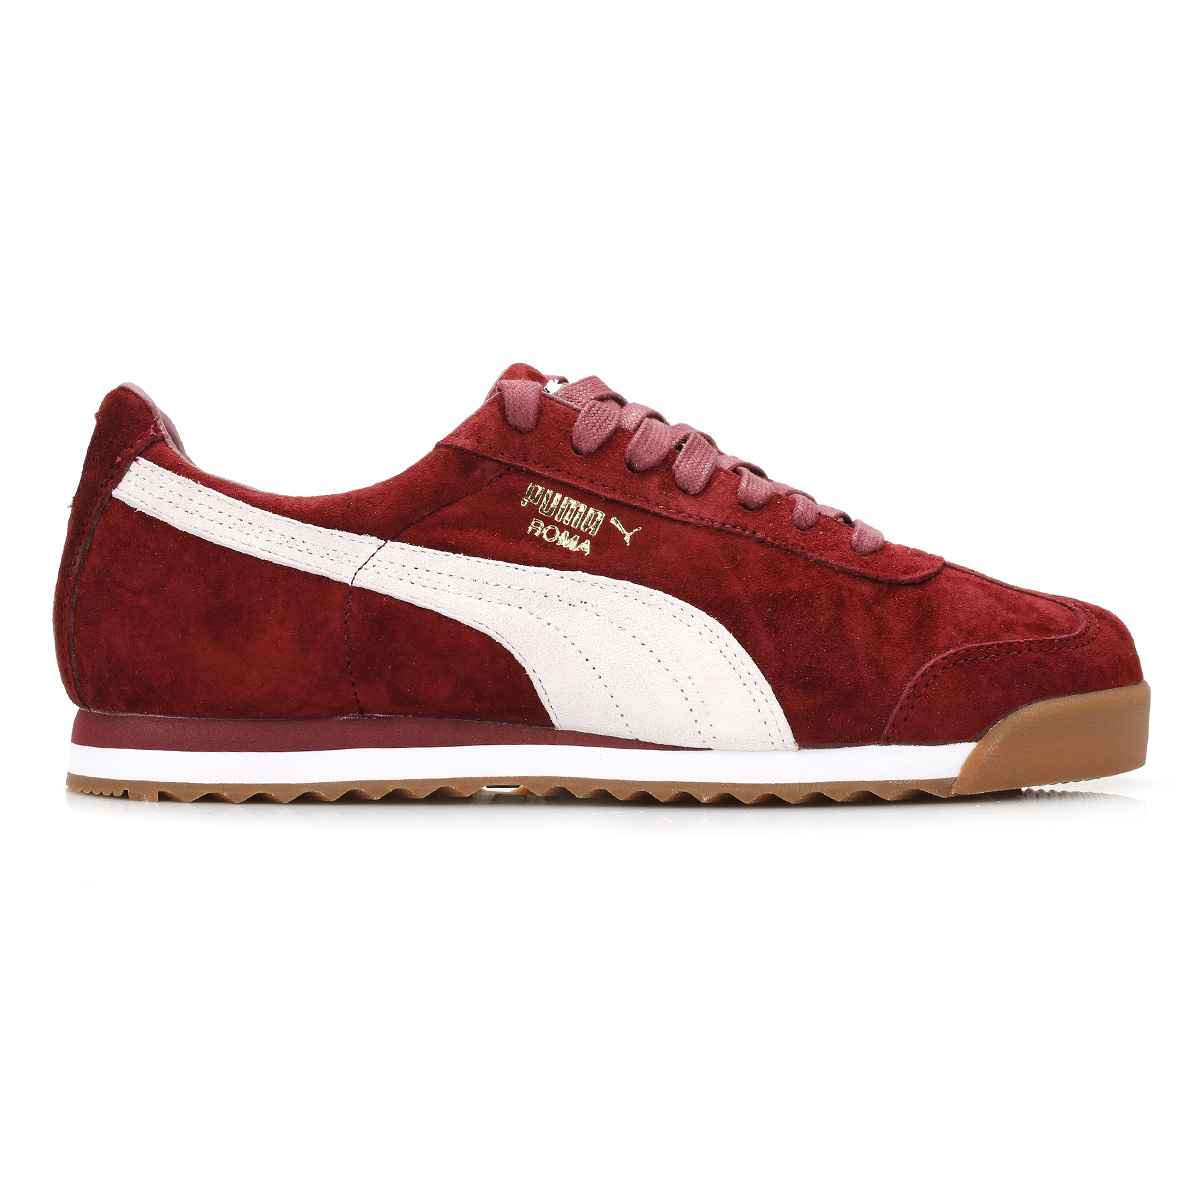 Puma Roma Suede Mens Shoes